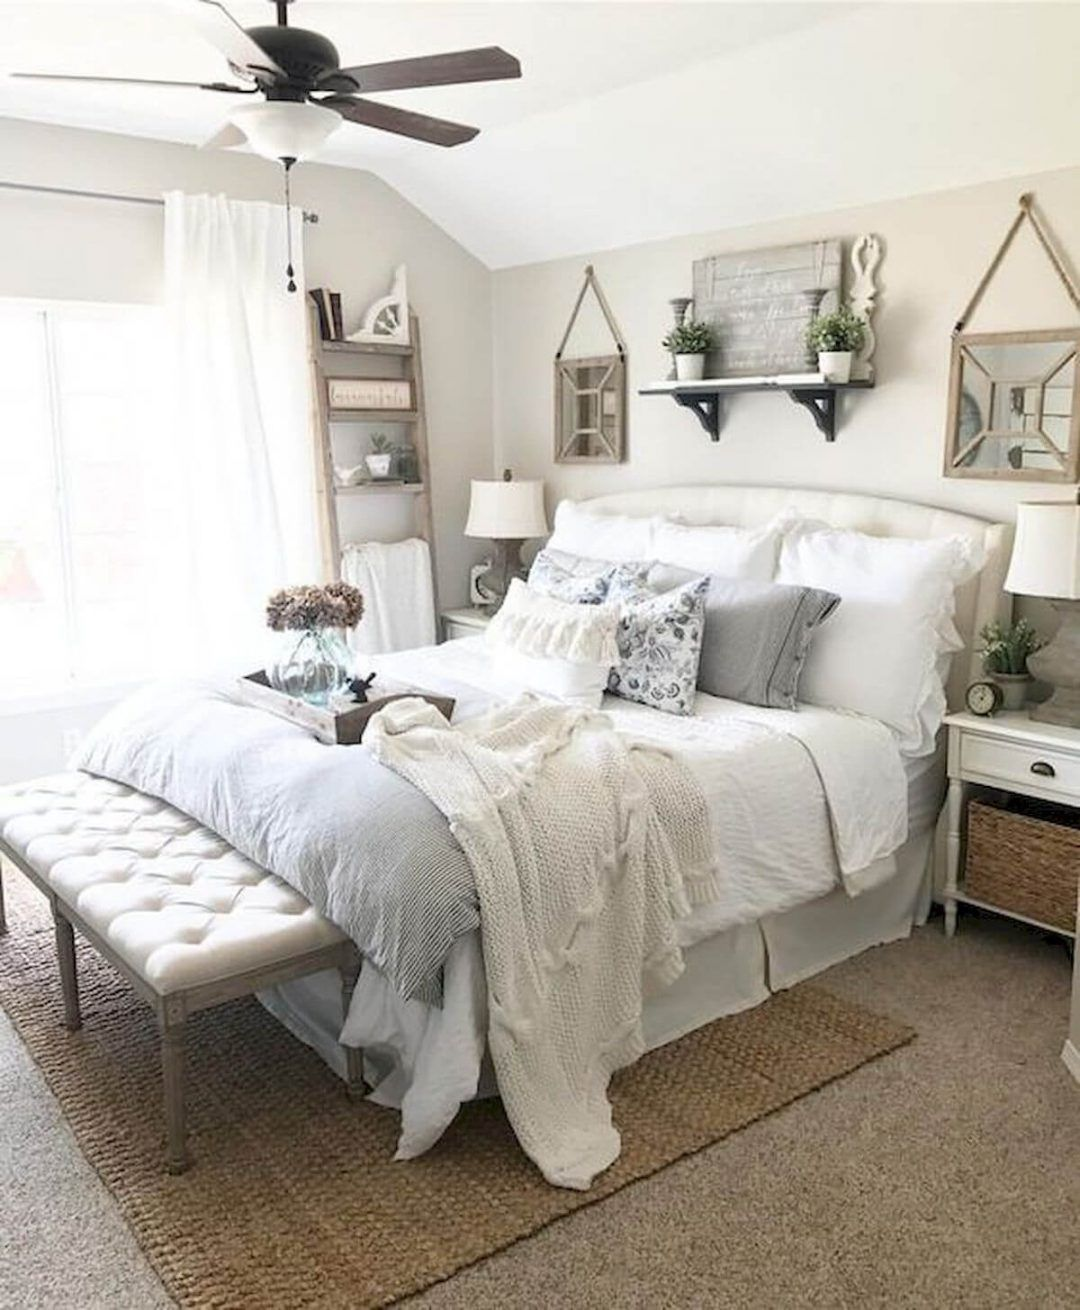 25 Absorbing Rustic Bedroom Concepts (Passions For Sleeping) - 24A